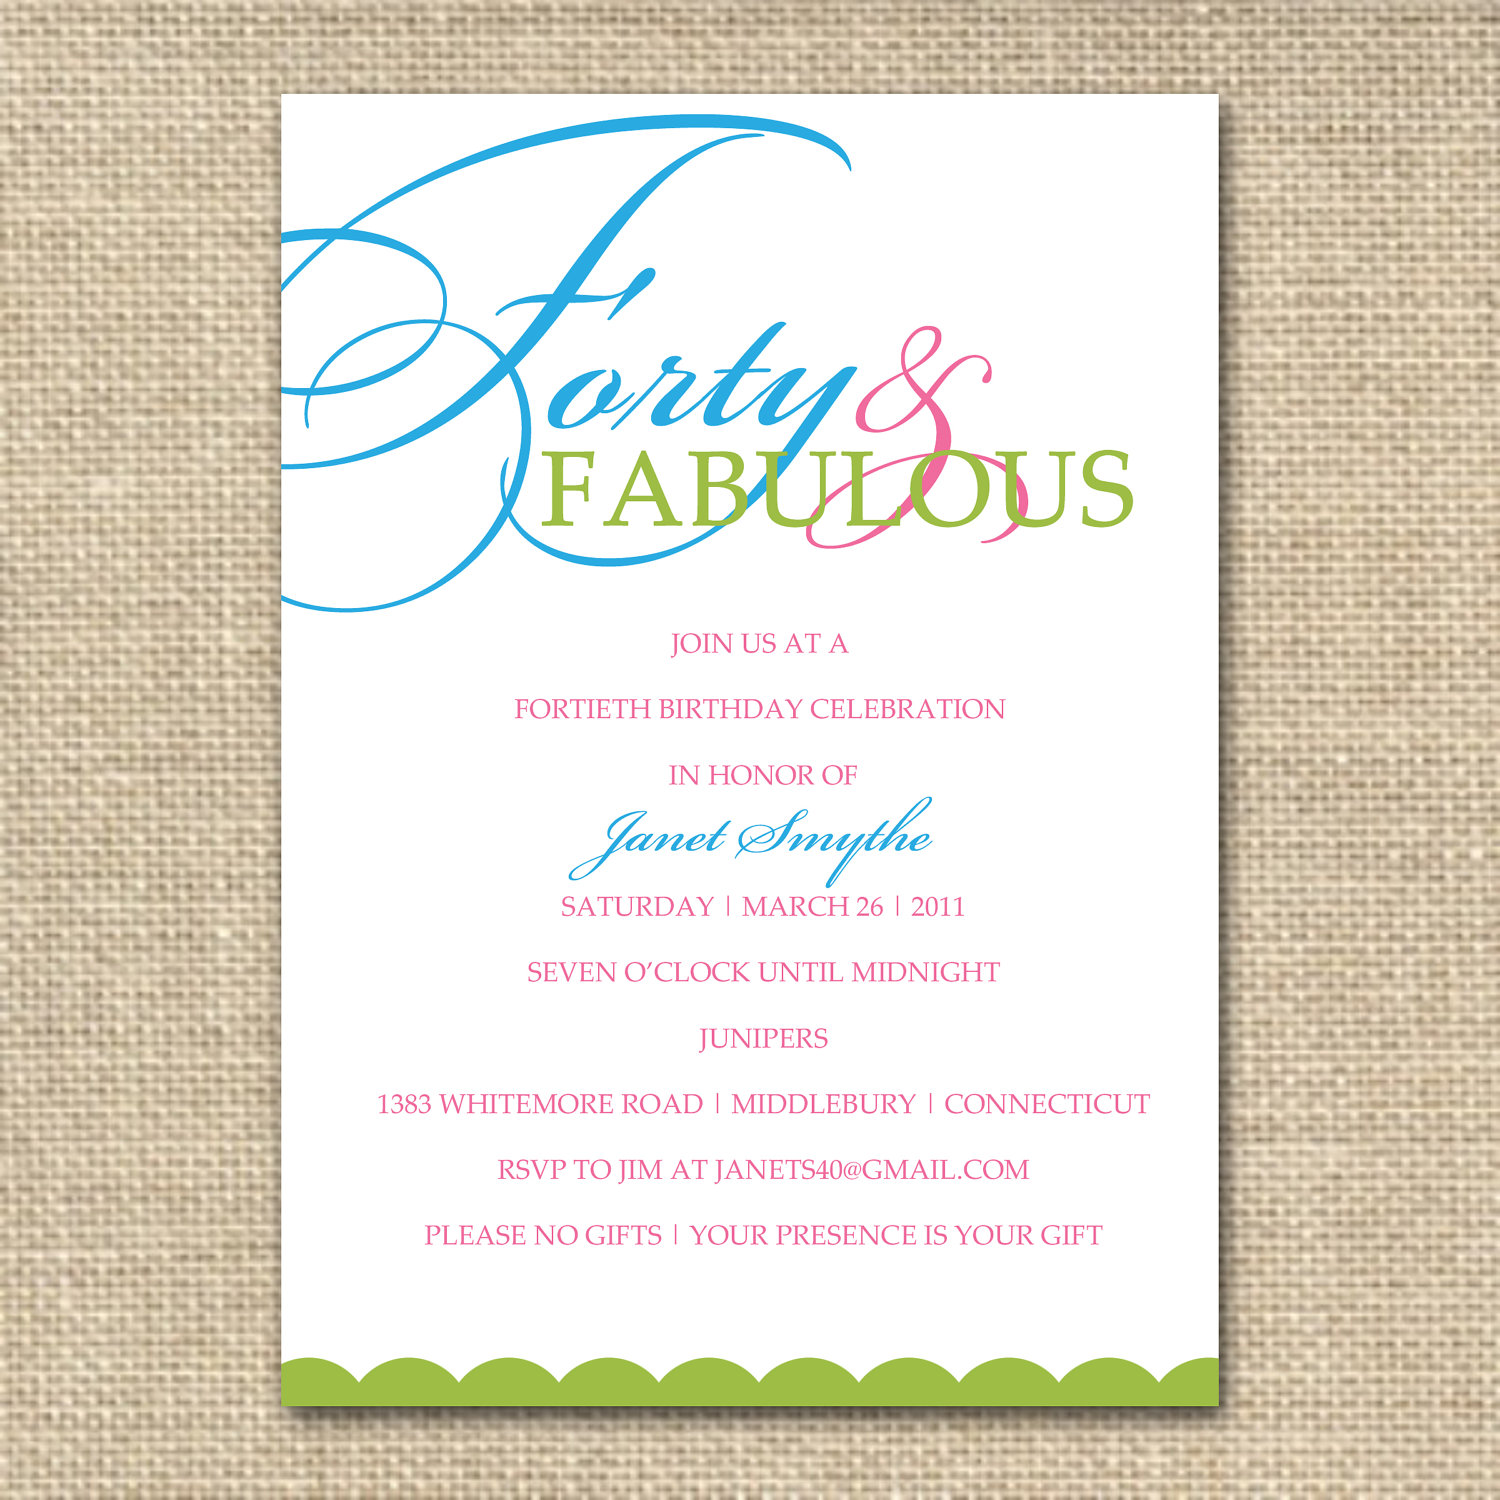 40th birthday invitation cards designs ; 40Th-Birthday-Invitation-Wording-will-give-you-extra-ideas-to-create-your-own-Birthday-invitation-1